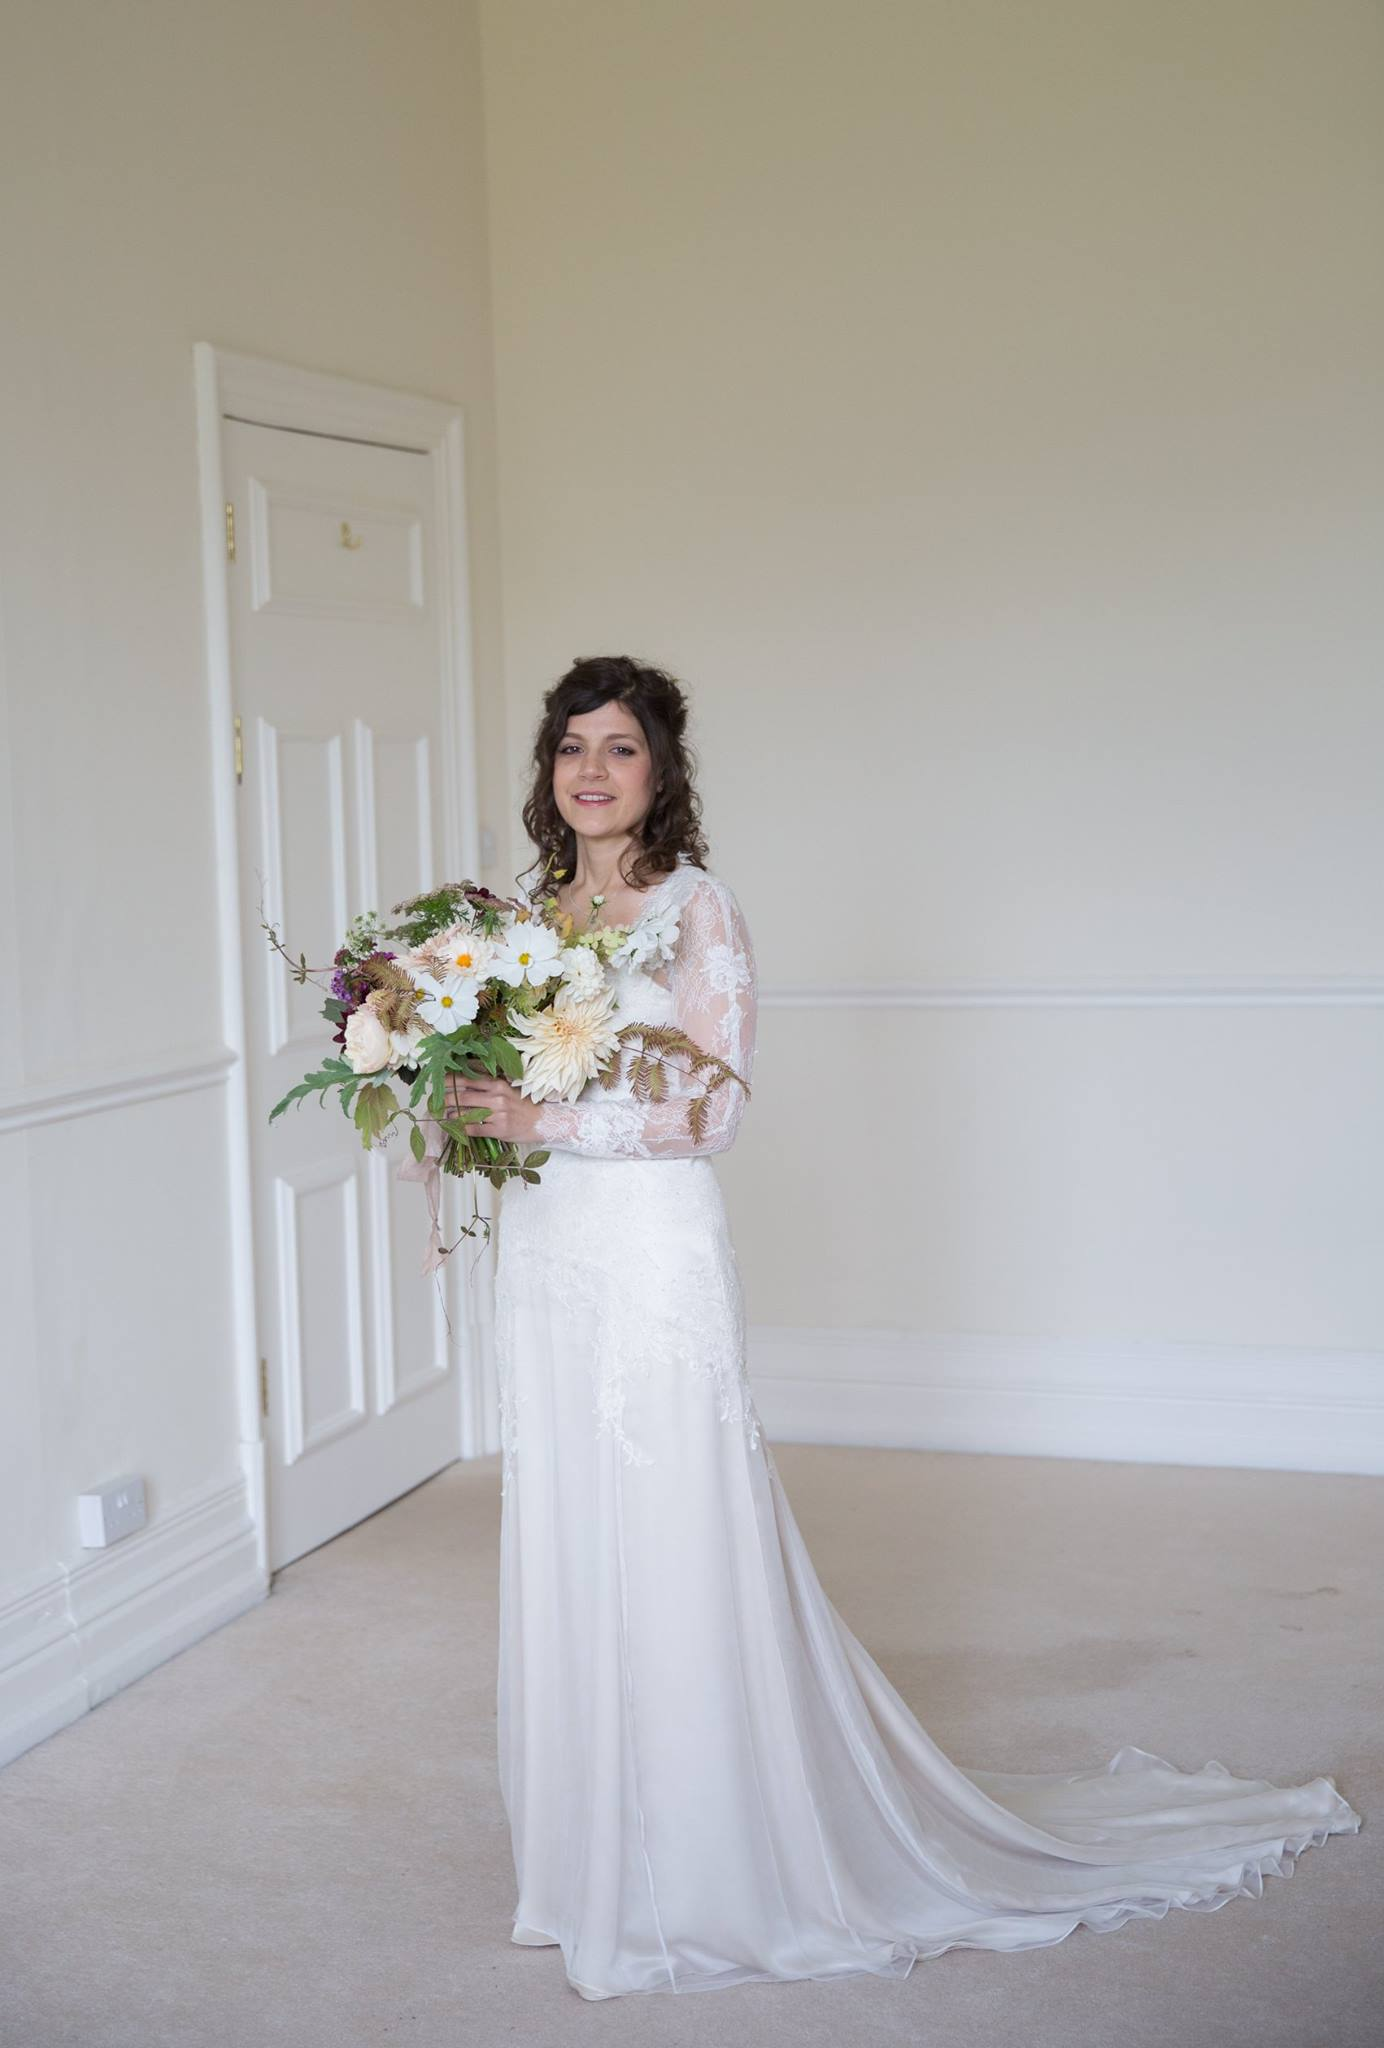 Marian's dress was made using peace silk, from  Majestic textiles, a UK organic silk supplier , and pretty laces in polyester and cotton from  Platinum bridal fabrics .